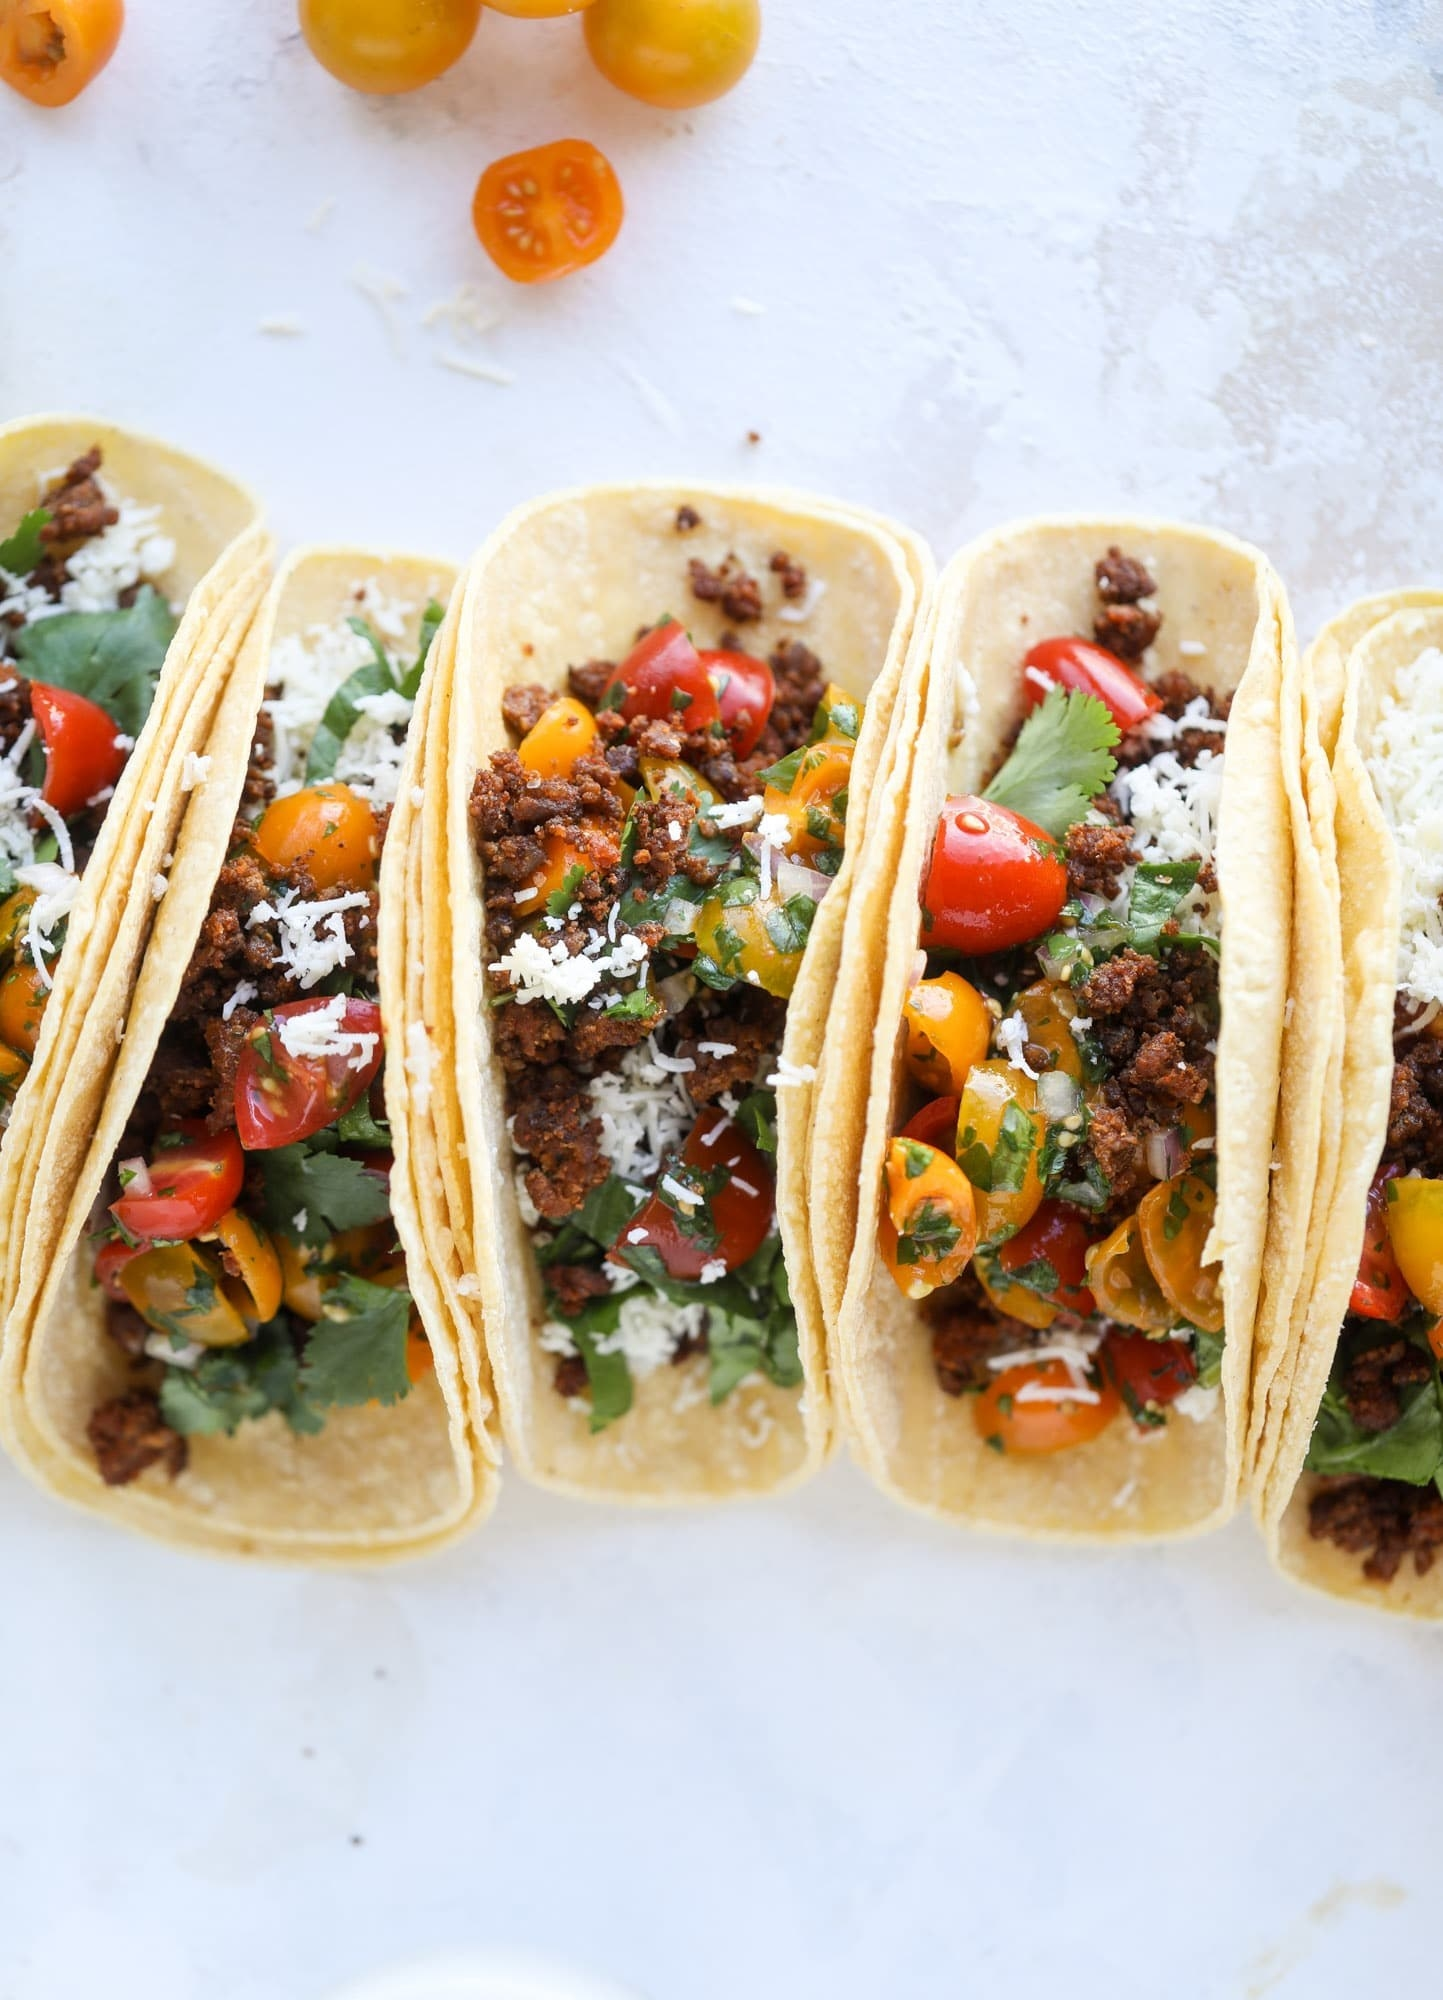 A handful of soft tortillas filled with ground beef, cherry tomatoes, onion, and cilantro.